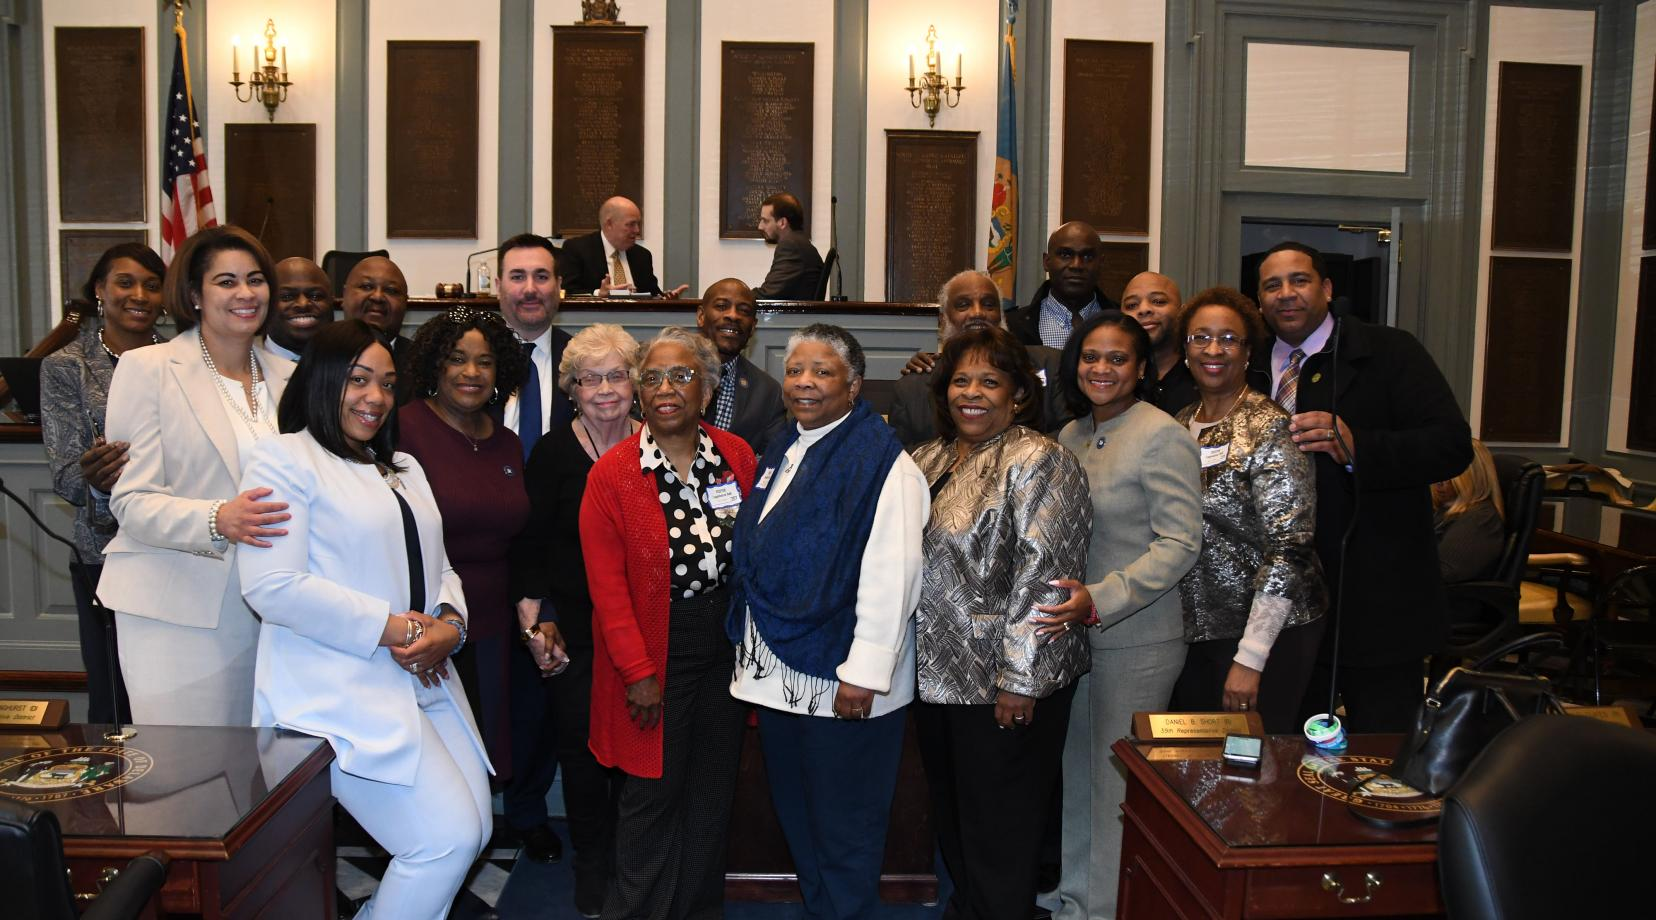 <p>The family of Hattie Mishoe (which include her daughters Bernellyn Carey in the center in red, and to her right Rev. Rita Paige and University President Wilma Mishoe) along with some of the House Joint Resolution No. 2 sponsors and friends celebrate the legislative expression honoring the former First Lady and the wife of then-Delaware State College President Luna I. Mishoe.</p>